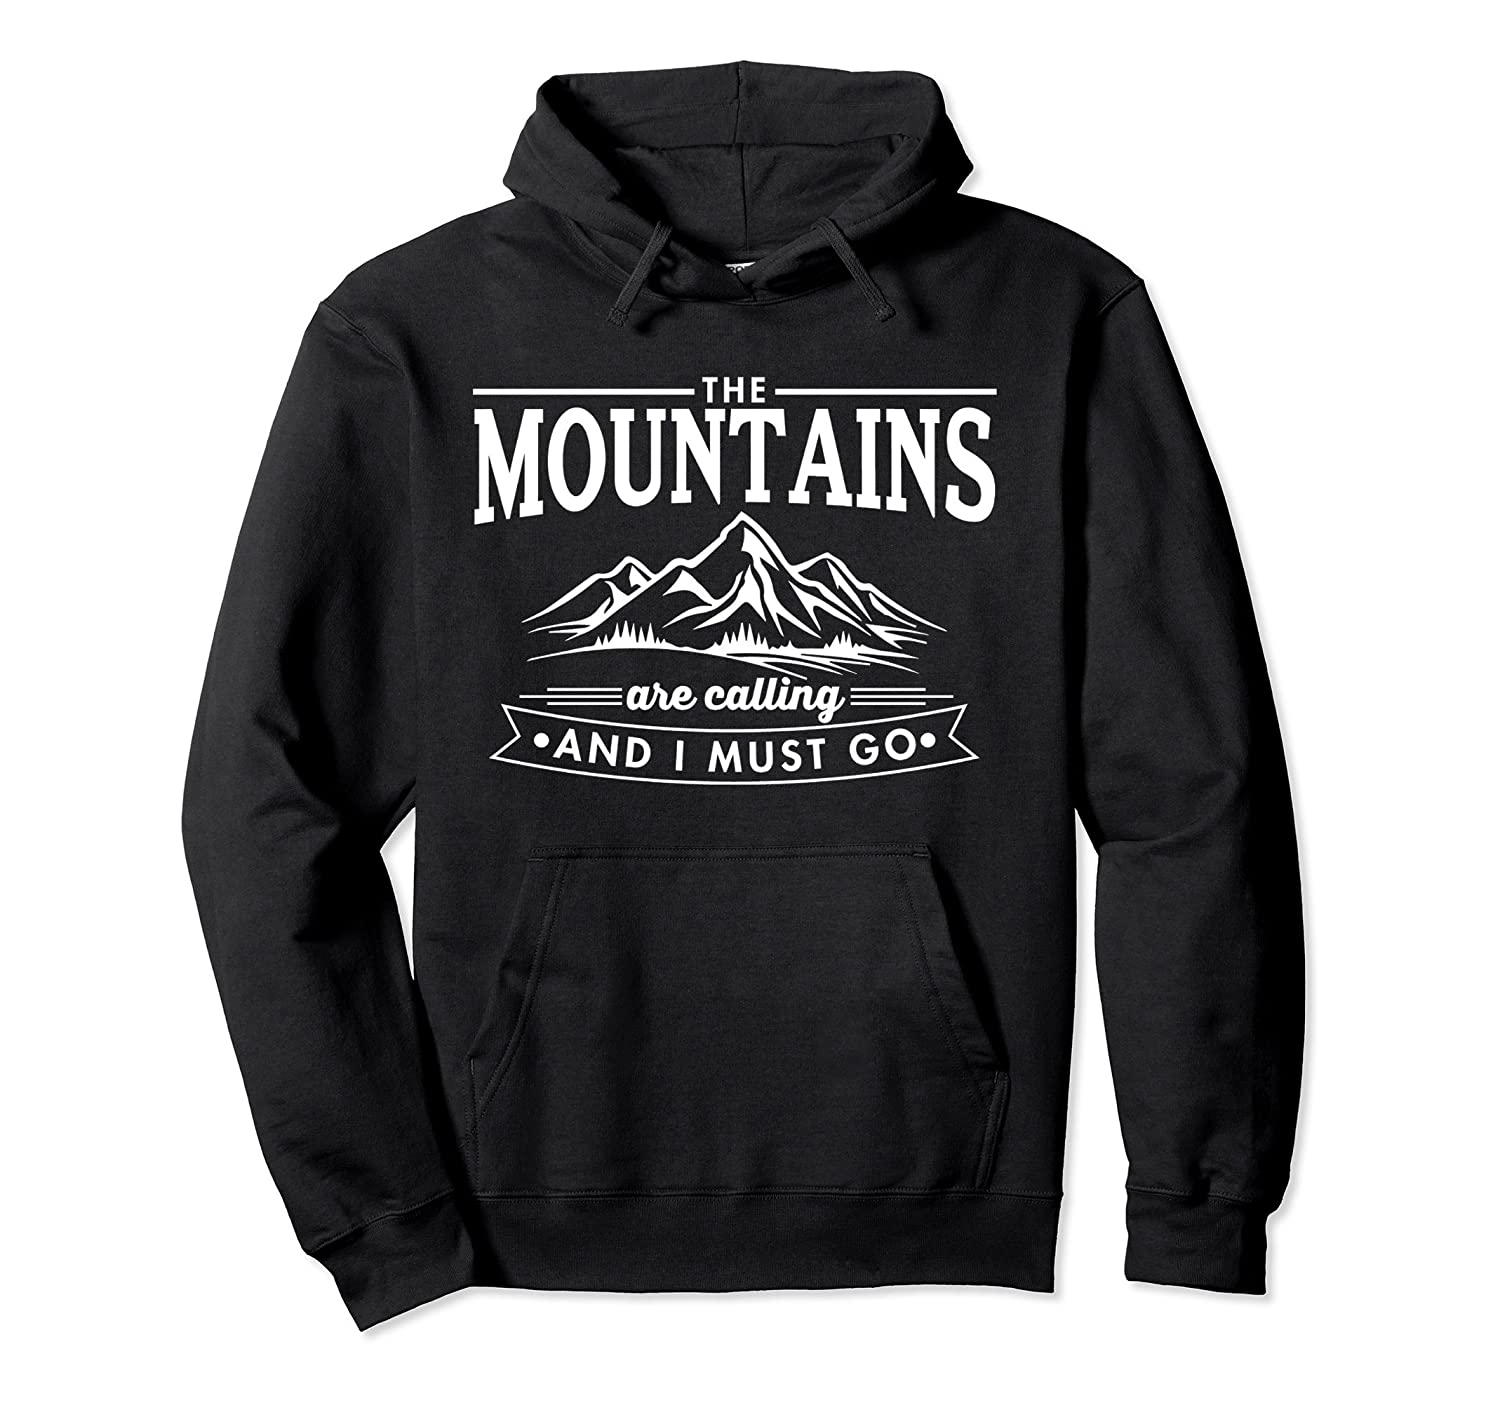 The Mountains Are Calling Pullover Hoodie Men Women Teens-alottee gift